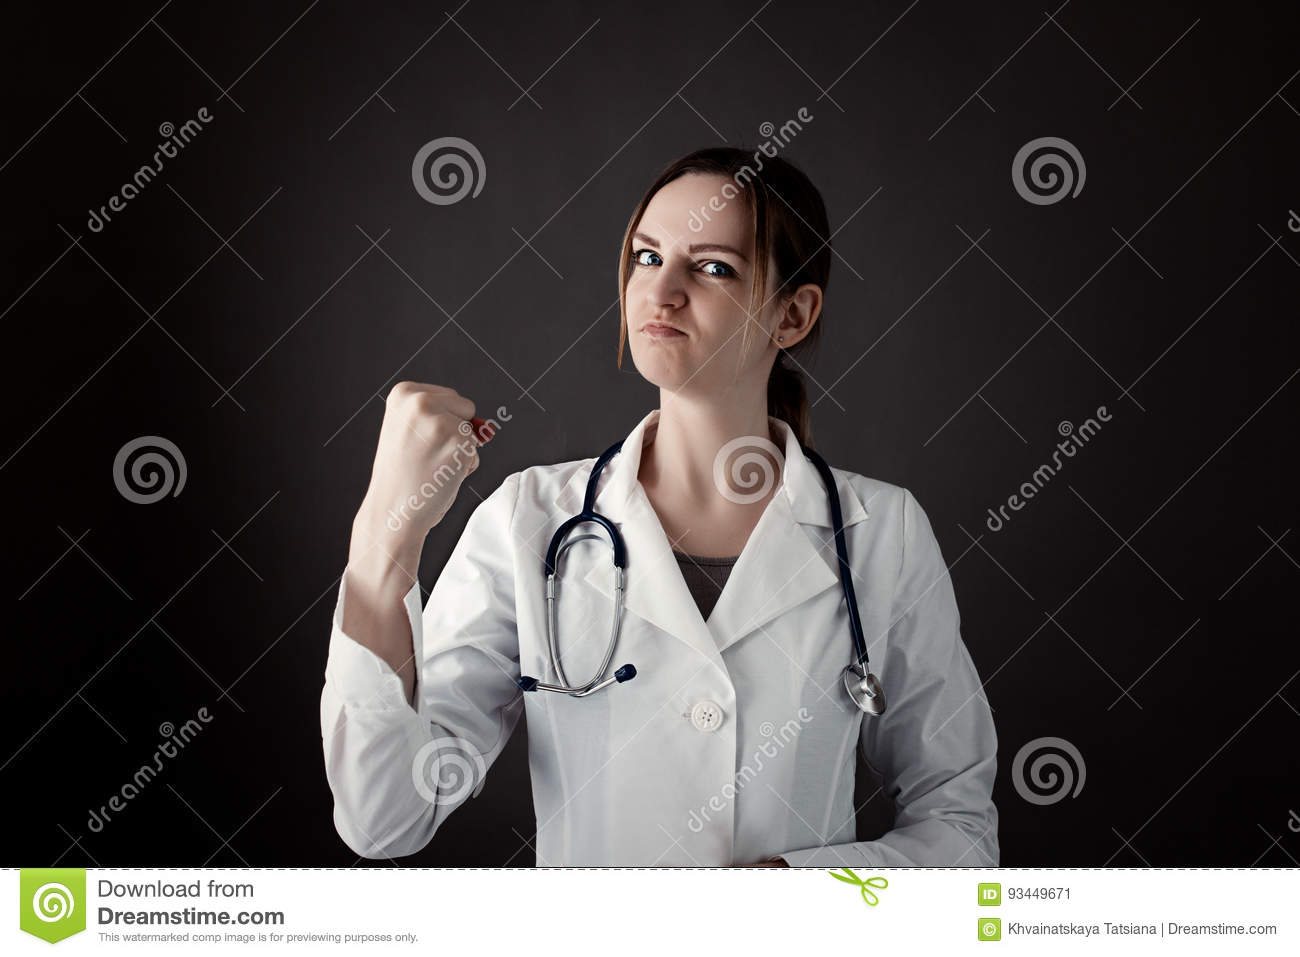 Female Intern Holds a fist and look in camera with strong face. Stethoscope or phonendoscope on neck. Medicine photo